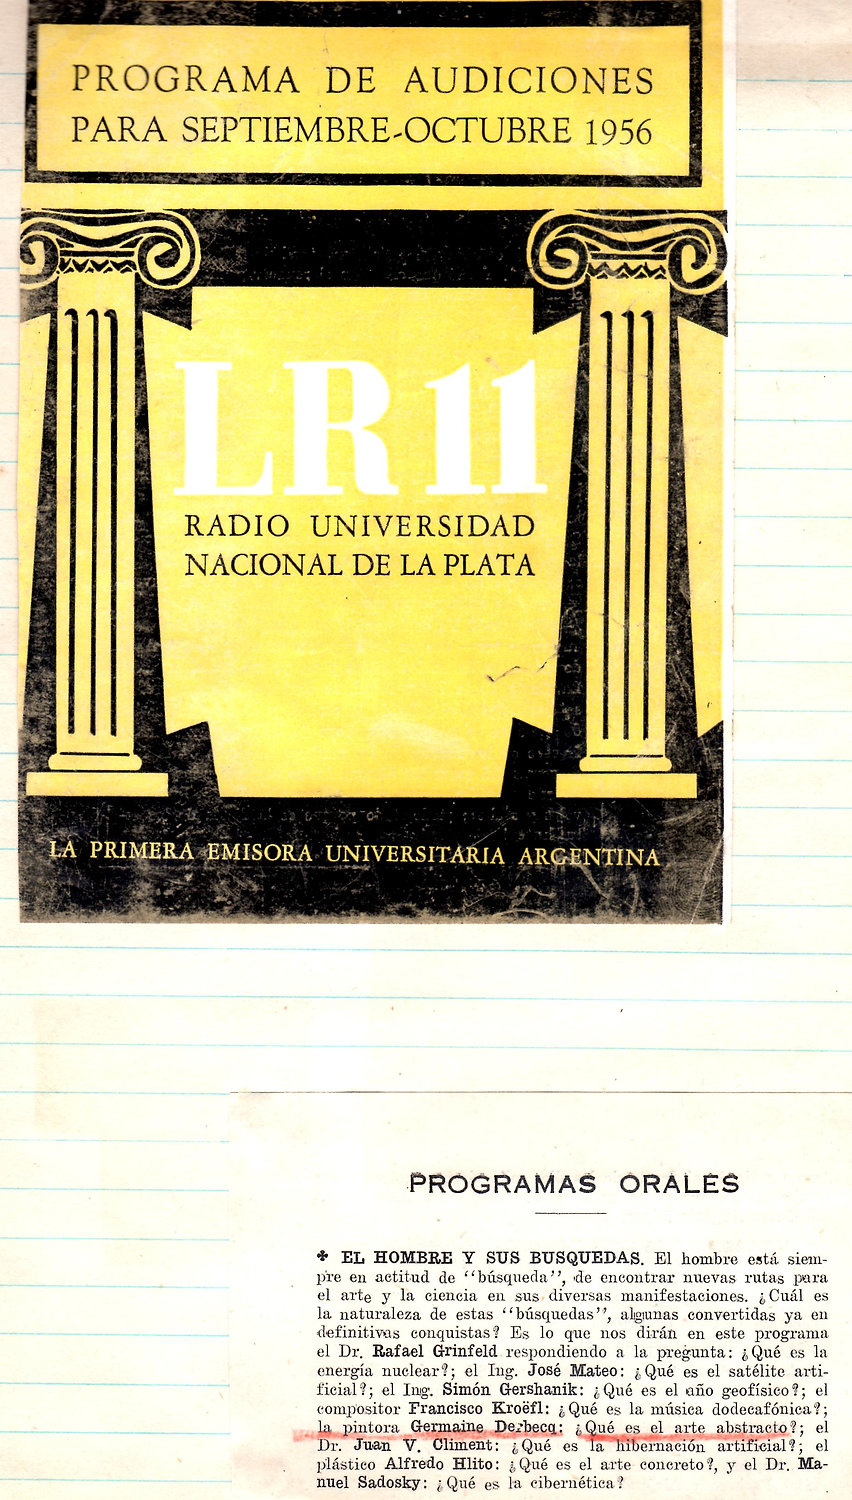 Le Quotidien2 -  Radio Universidad.jpg